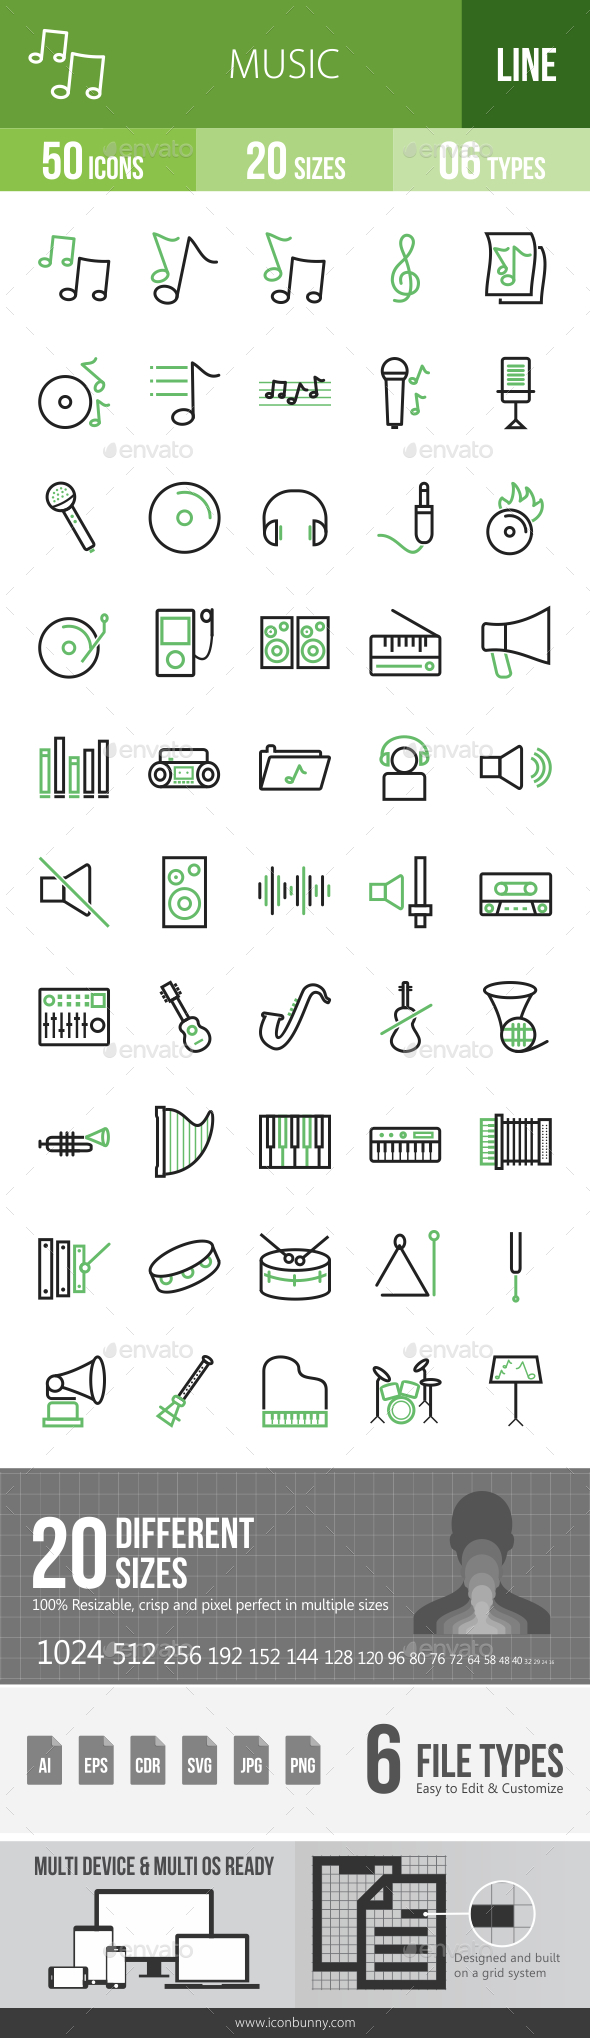 Music Line Green & Black Icons - Icons